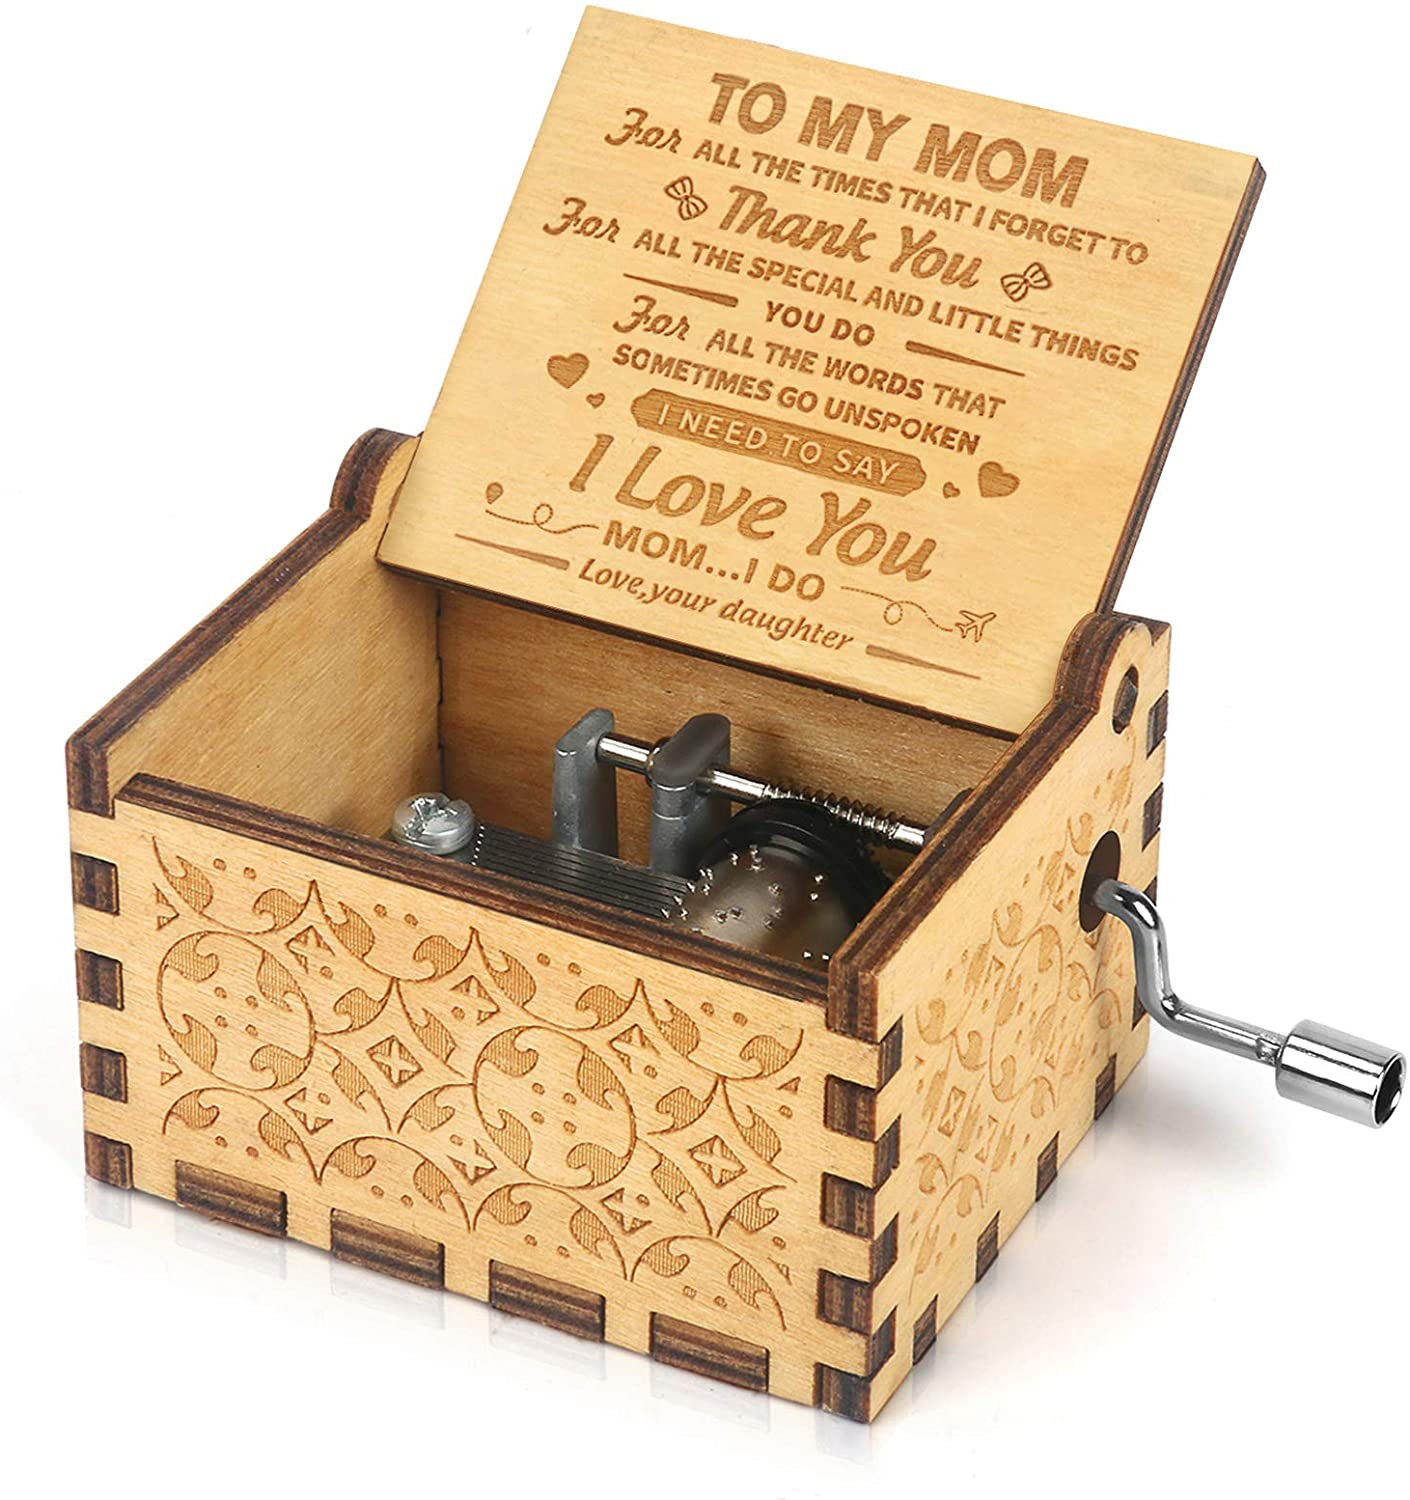 Gifts for mothers, Music Box